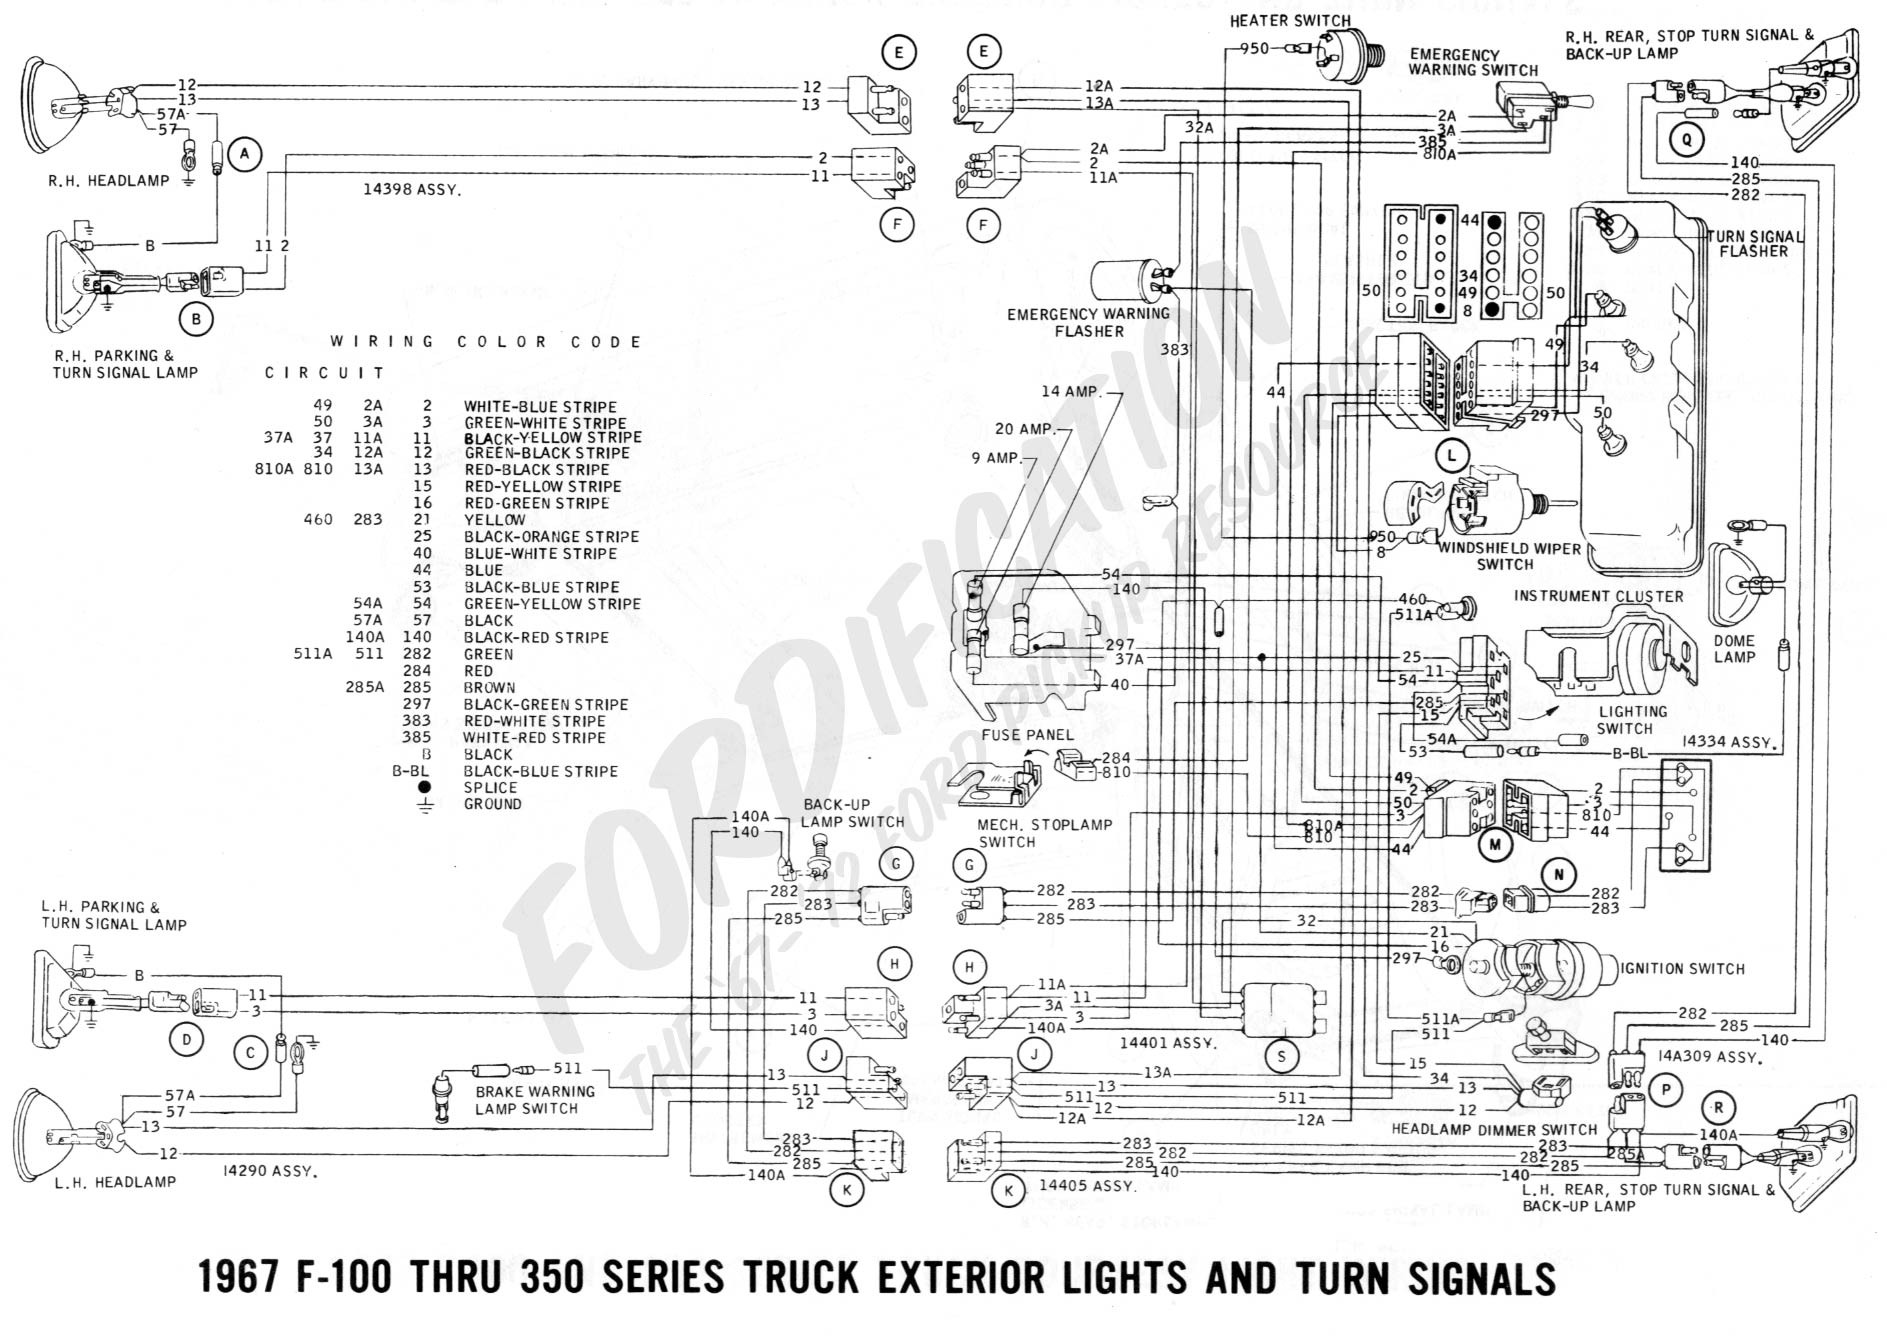 1969 Firebird Turn Signal Wiring Diagrams Diagram F100 On Rh Prevniga Co